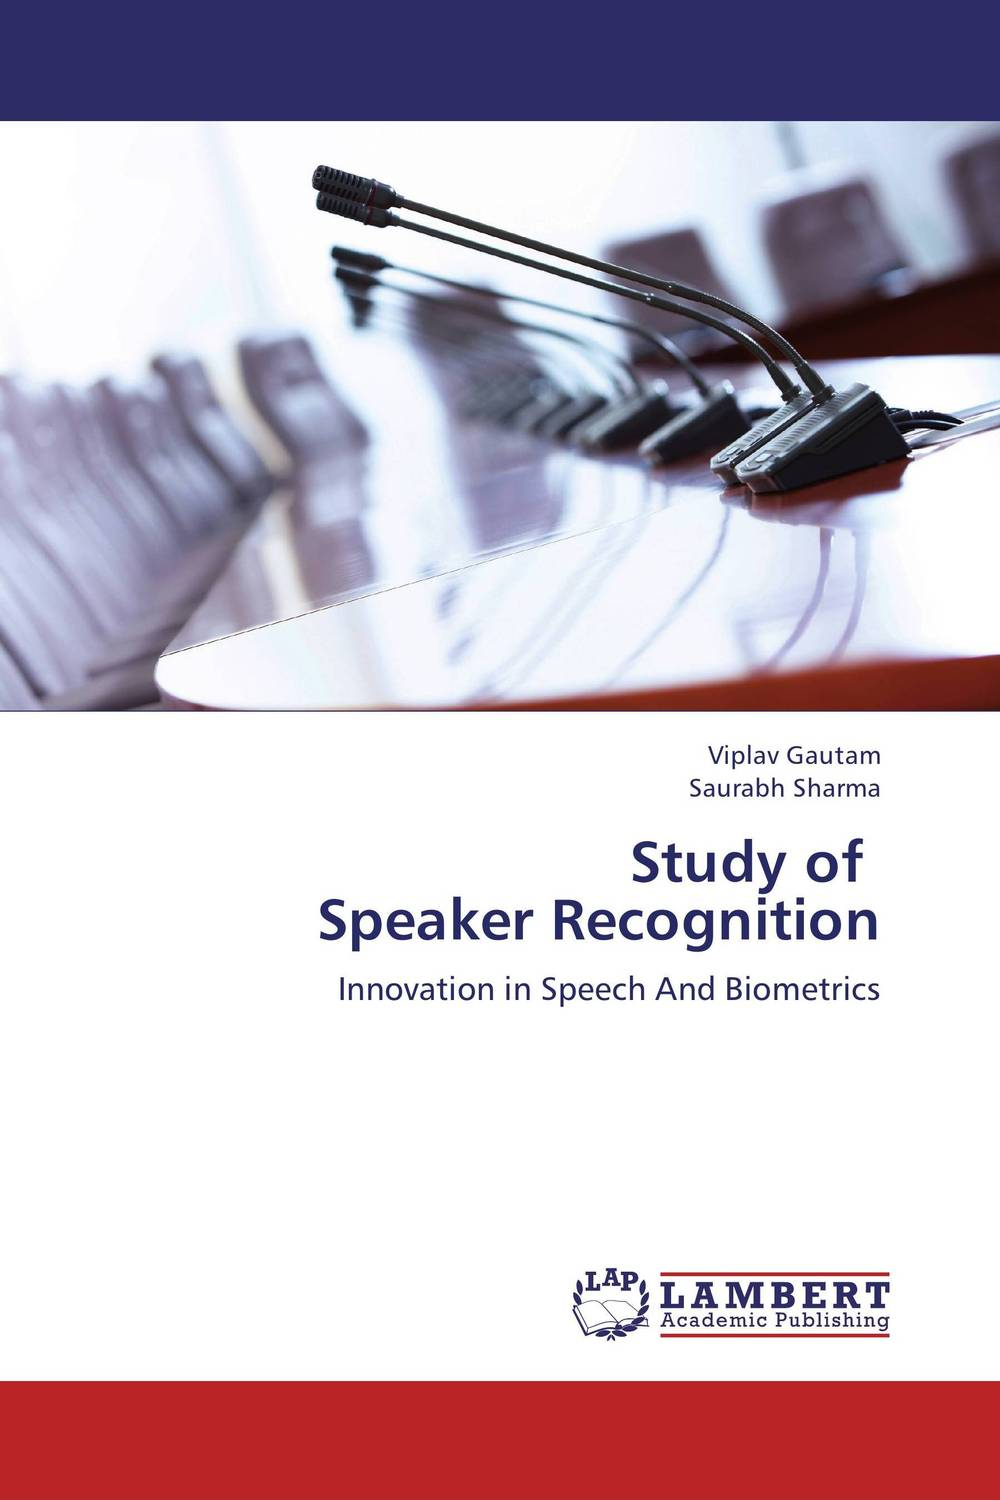 Study of   Speaker Recognition belousov a security features of banknotes and other documents methods of authentication manual денежные билеты бланки ценных бумаг и документов